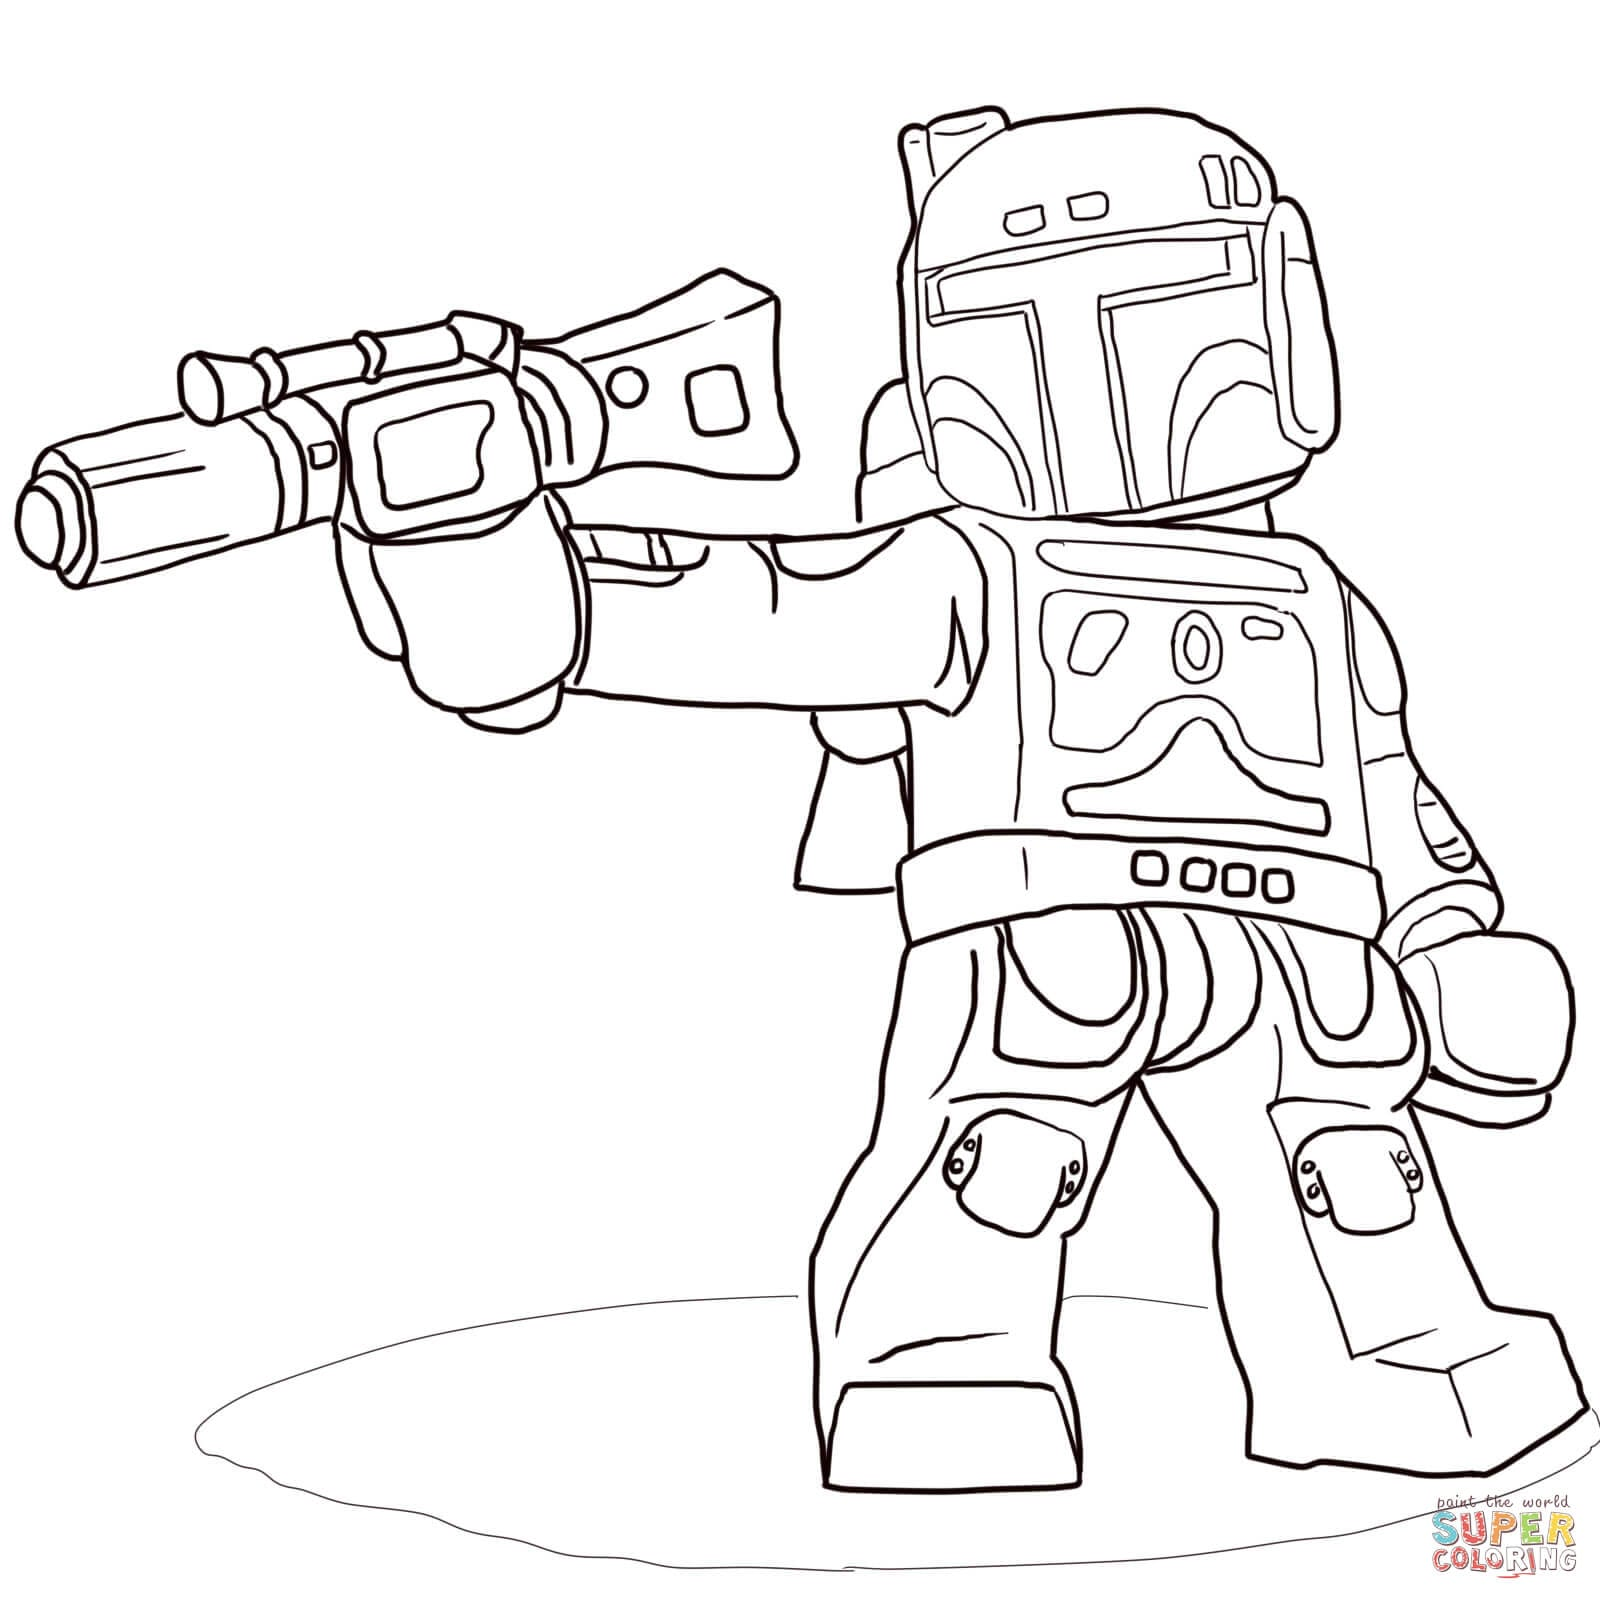 Star Wars Lego Coloring Pages Go Digital With Us F7408120363a For